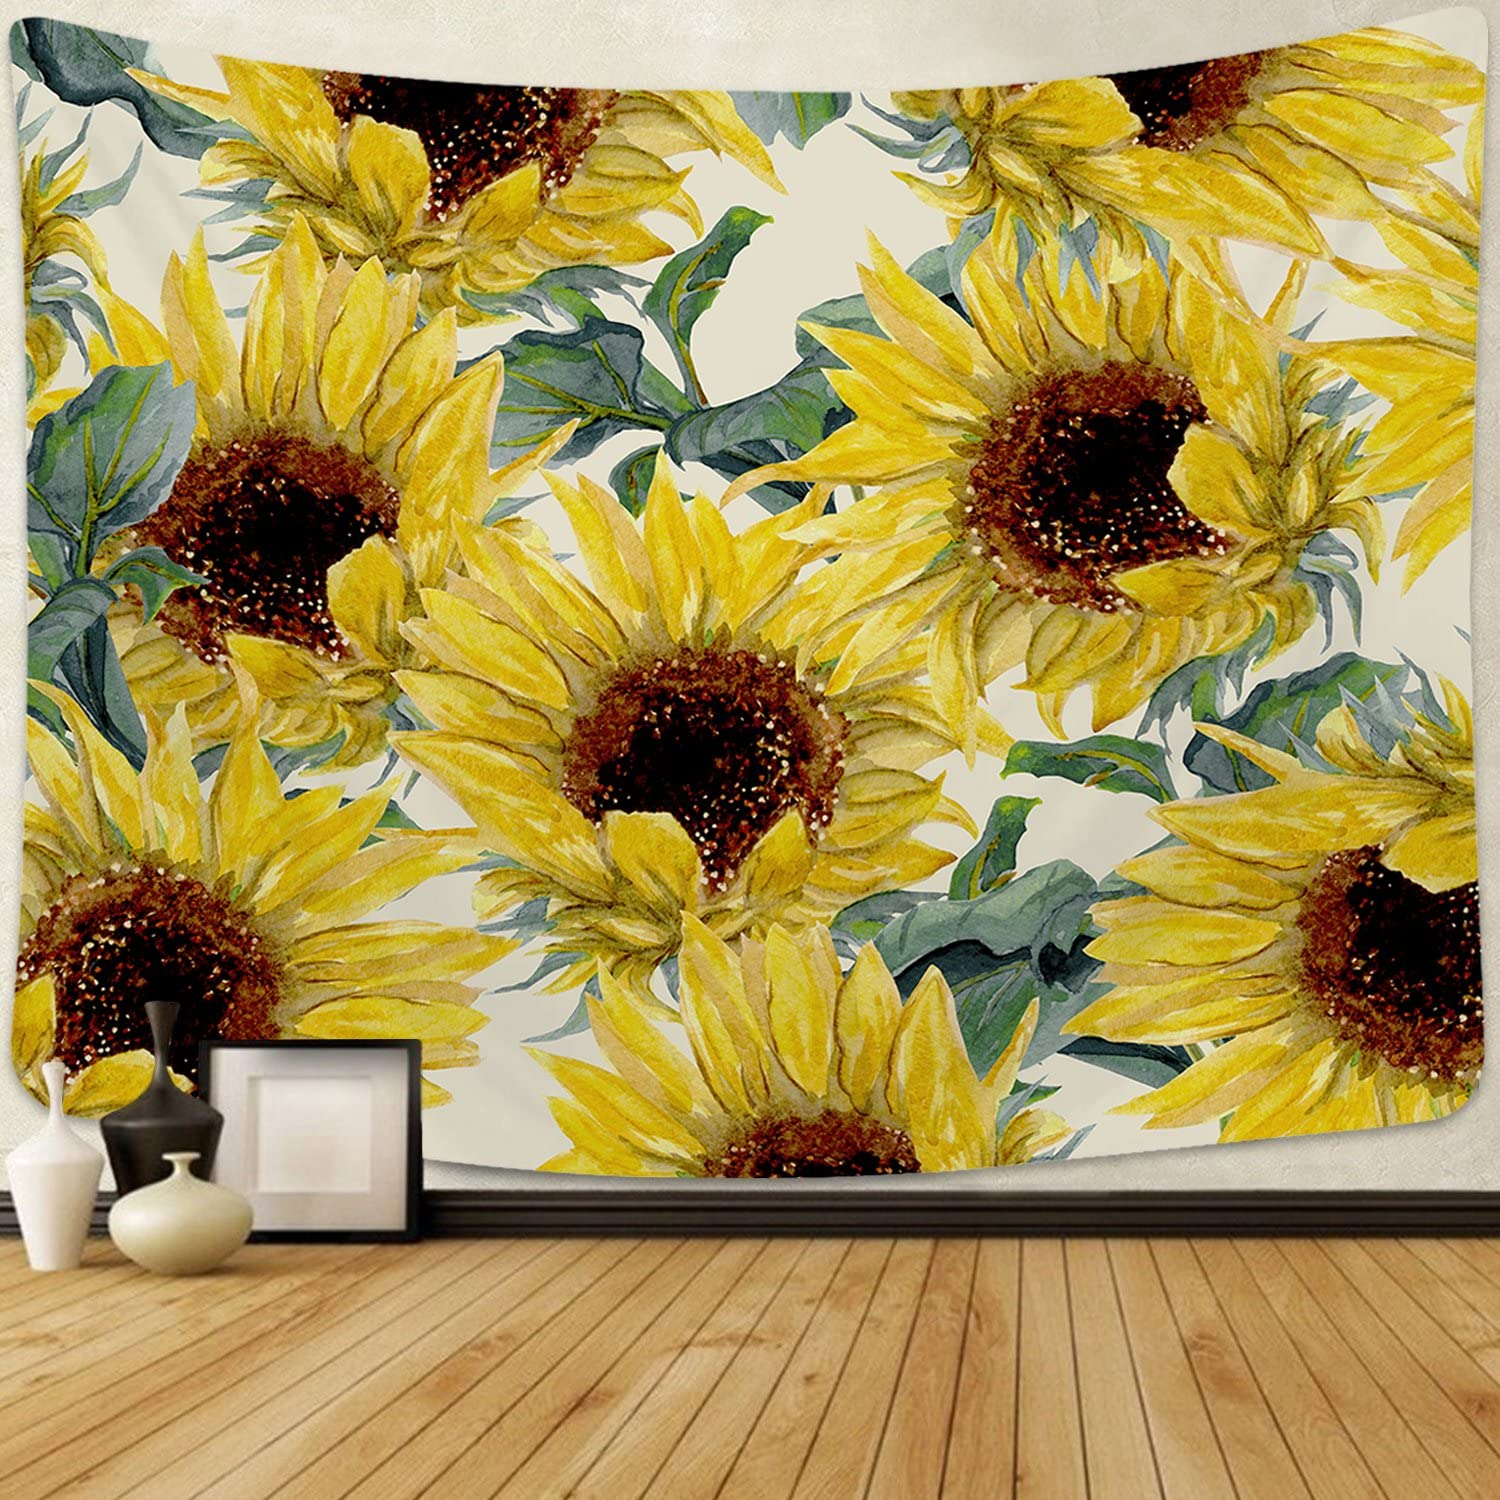 Amazon Com Smurfs Yingda Sunflowers Tapestry Wall Hanging Sunflower Plant Printed Tapestry Sunflower Watercolor Tapestry Cactus Wall Tapestry For Kids Girls Boys Room Bedroom Living Room Dorm Home Kitchen